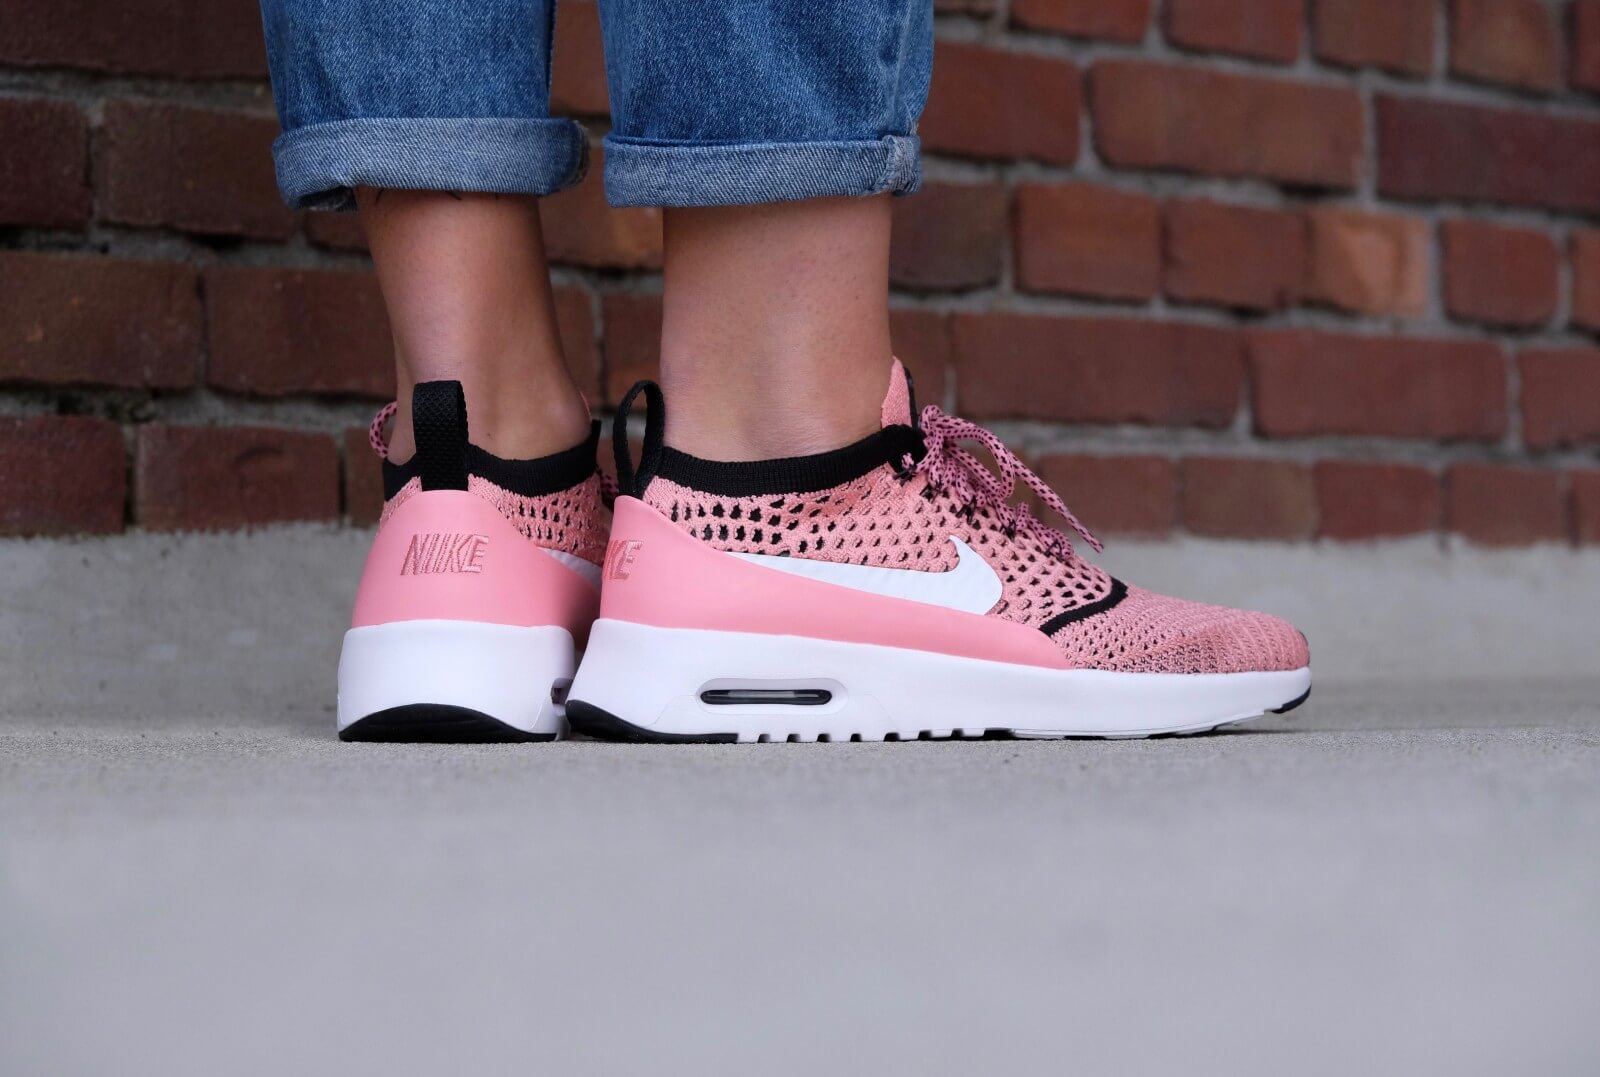 Nike WMNS Air Max Thea Ultra Flyknit Bright melon White black 881175 800